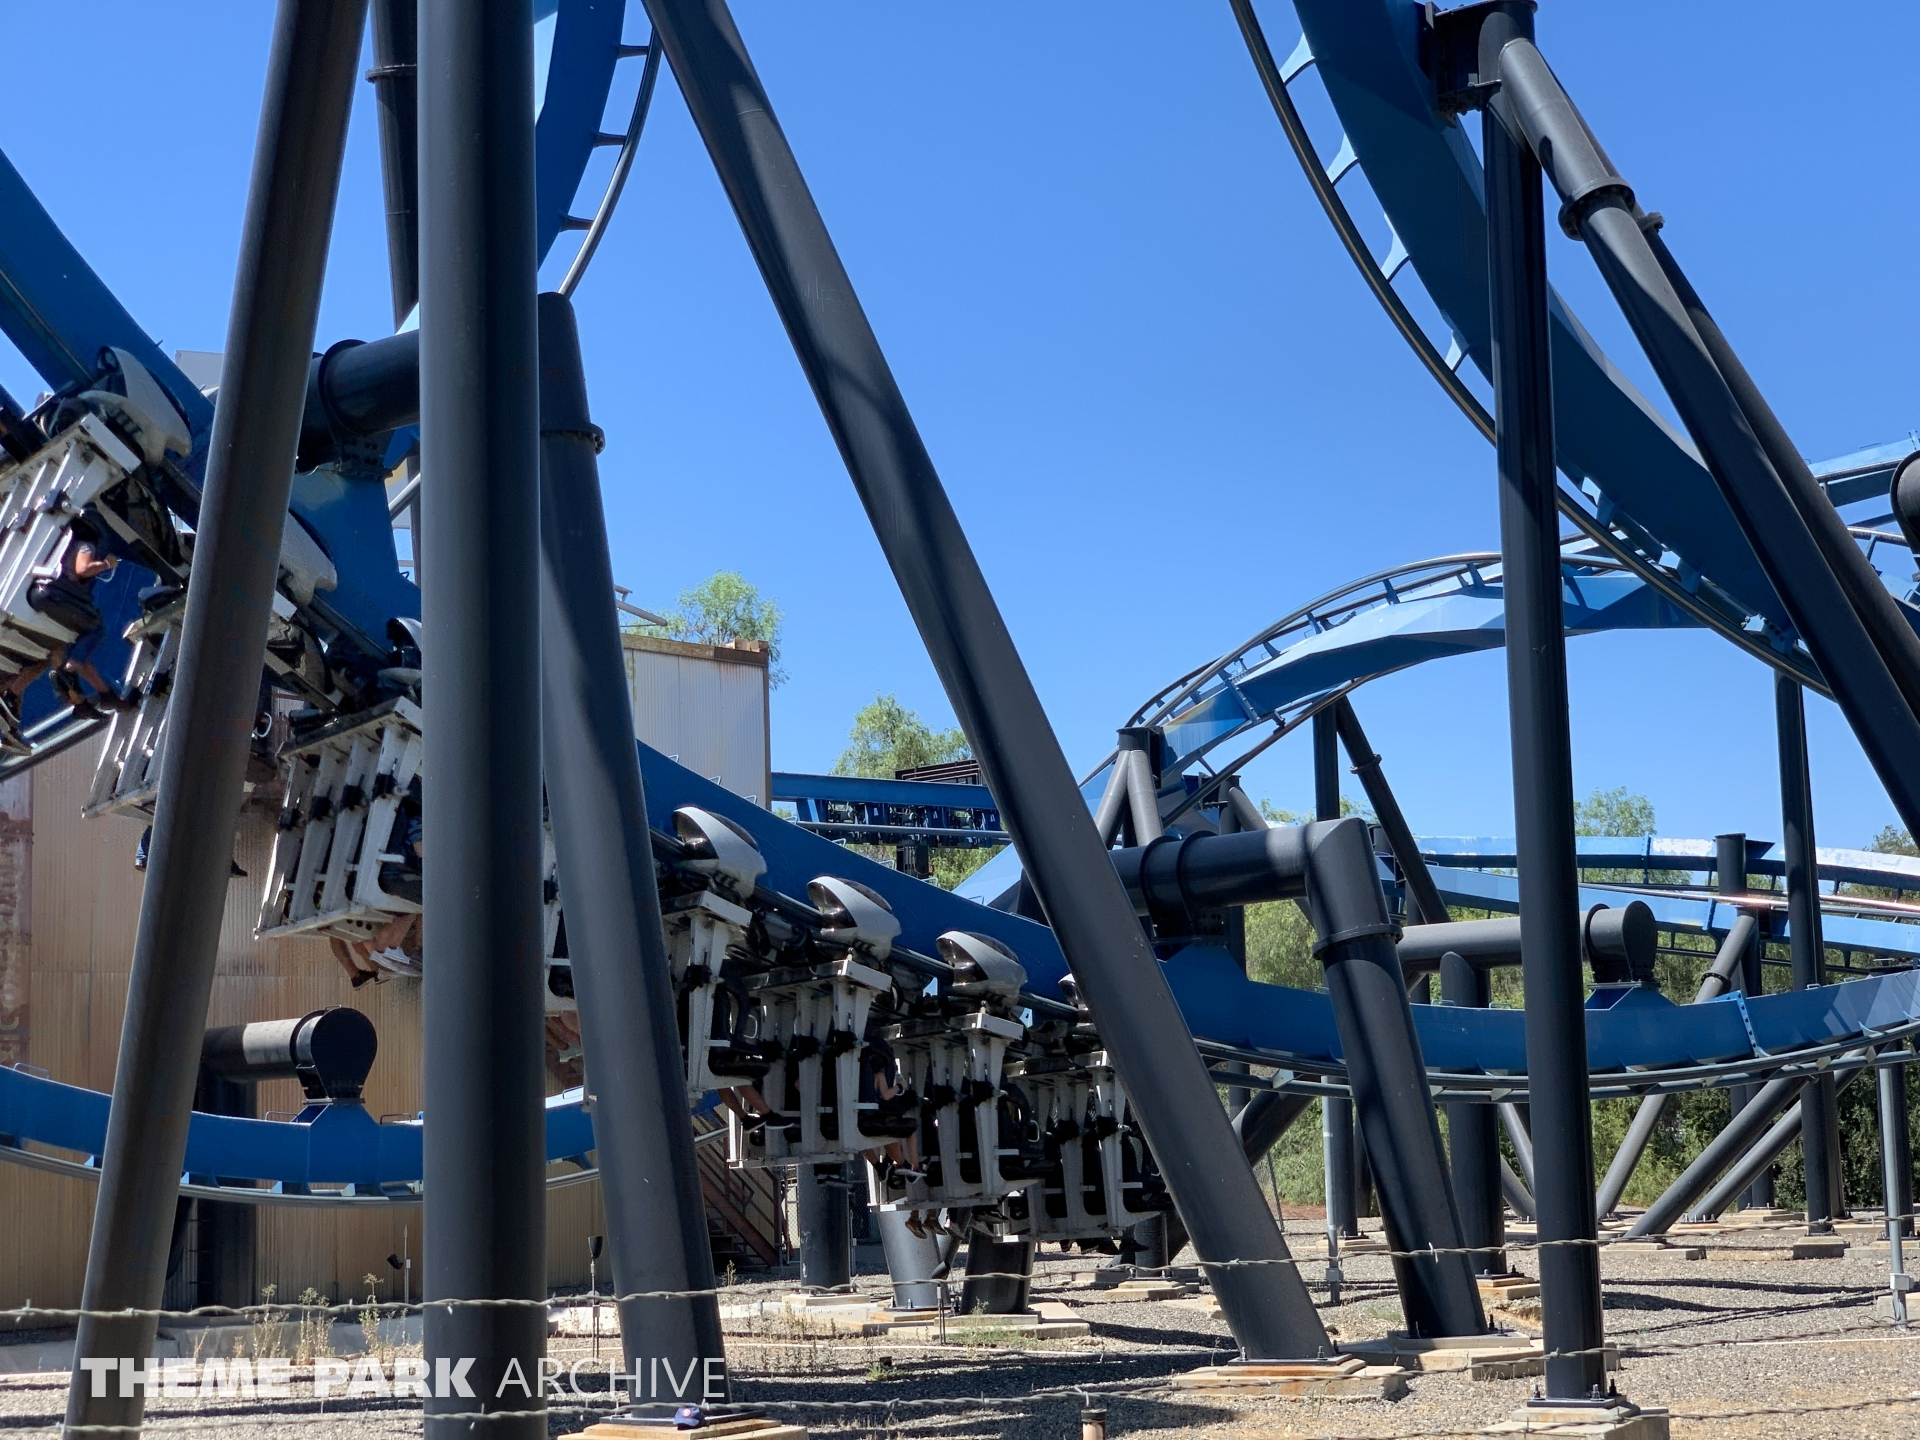 Batman The Ride at Six Flags Magic Mountain